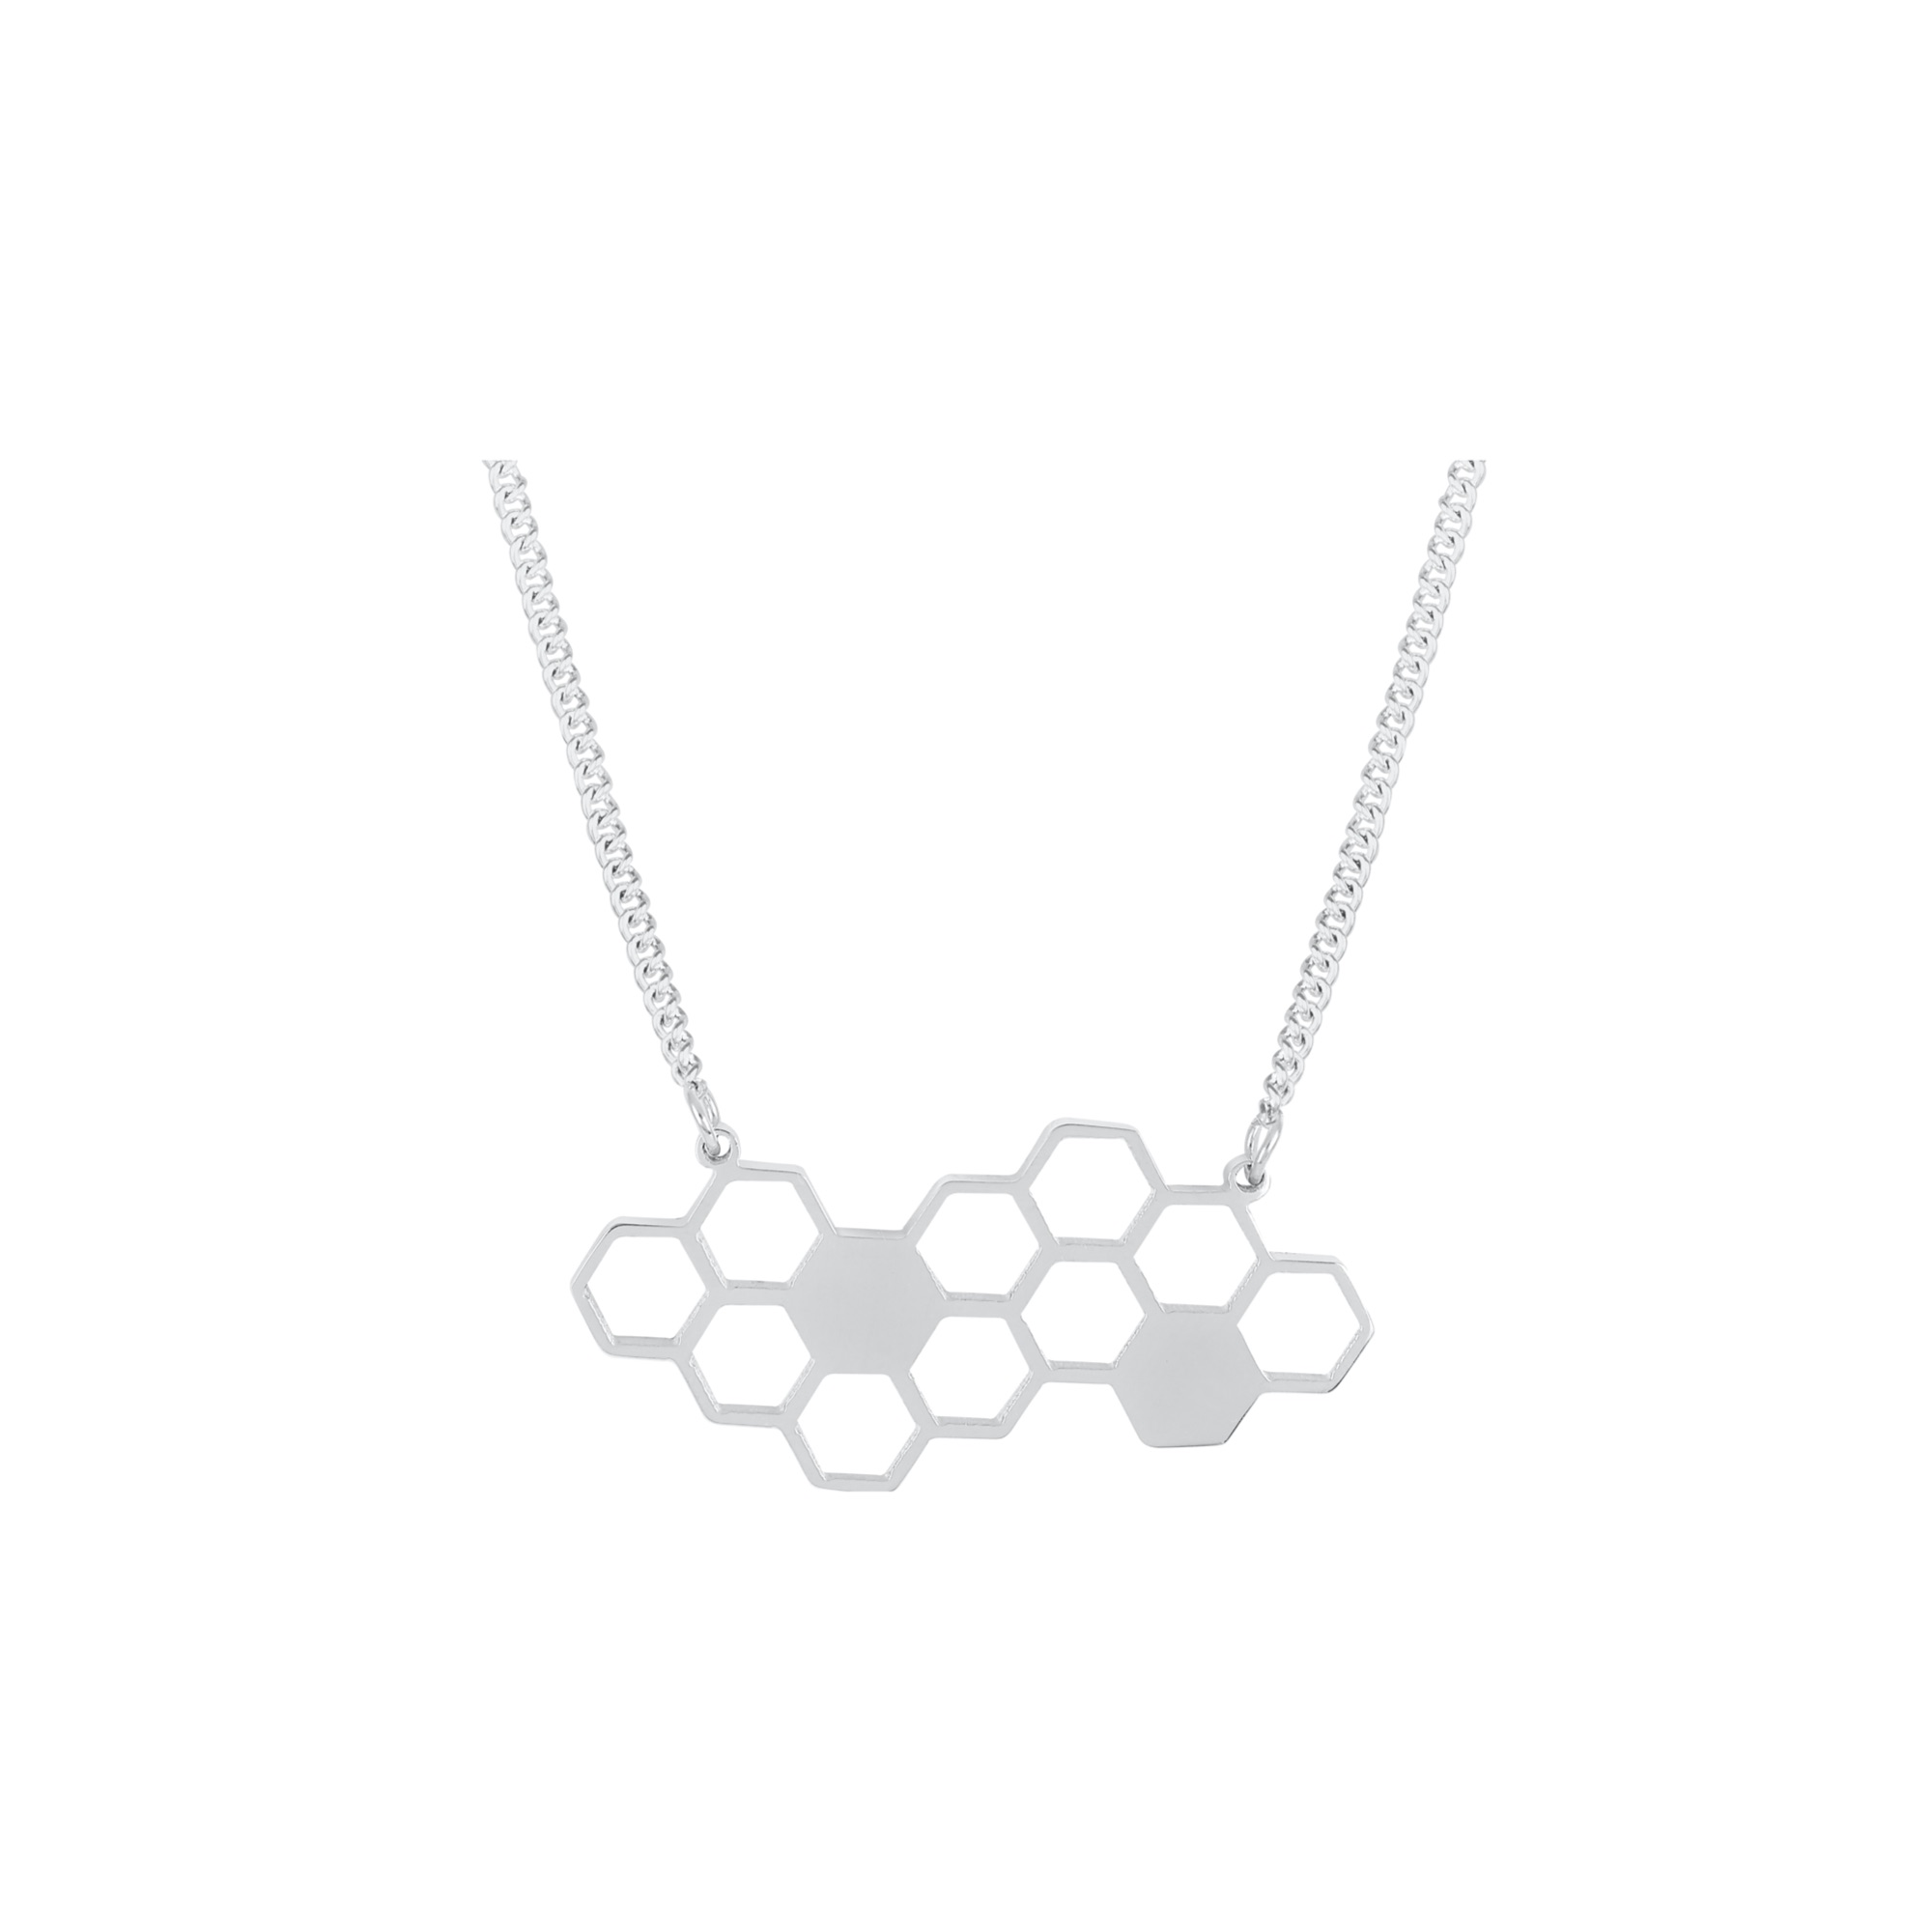 Honeycomb necklace steel